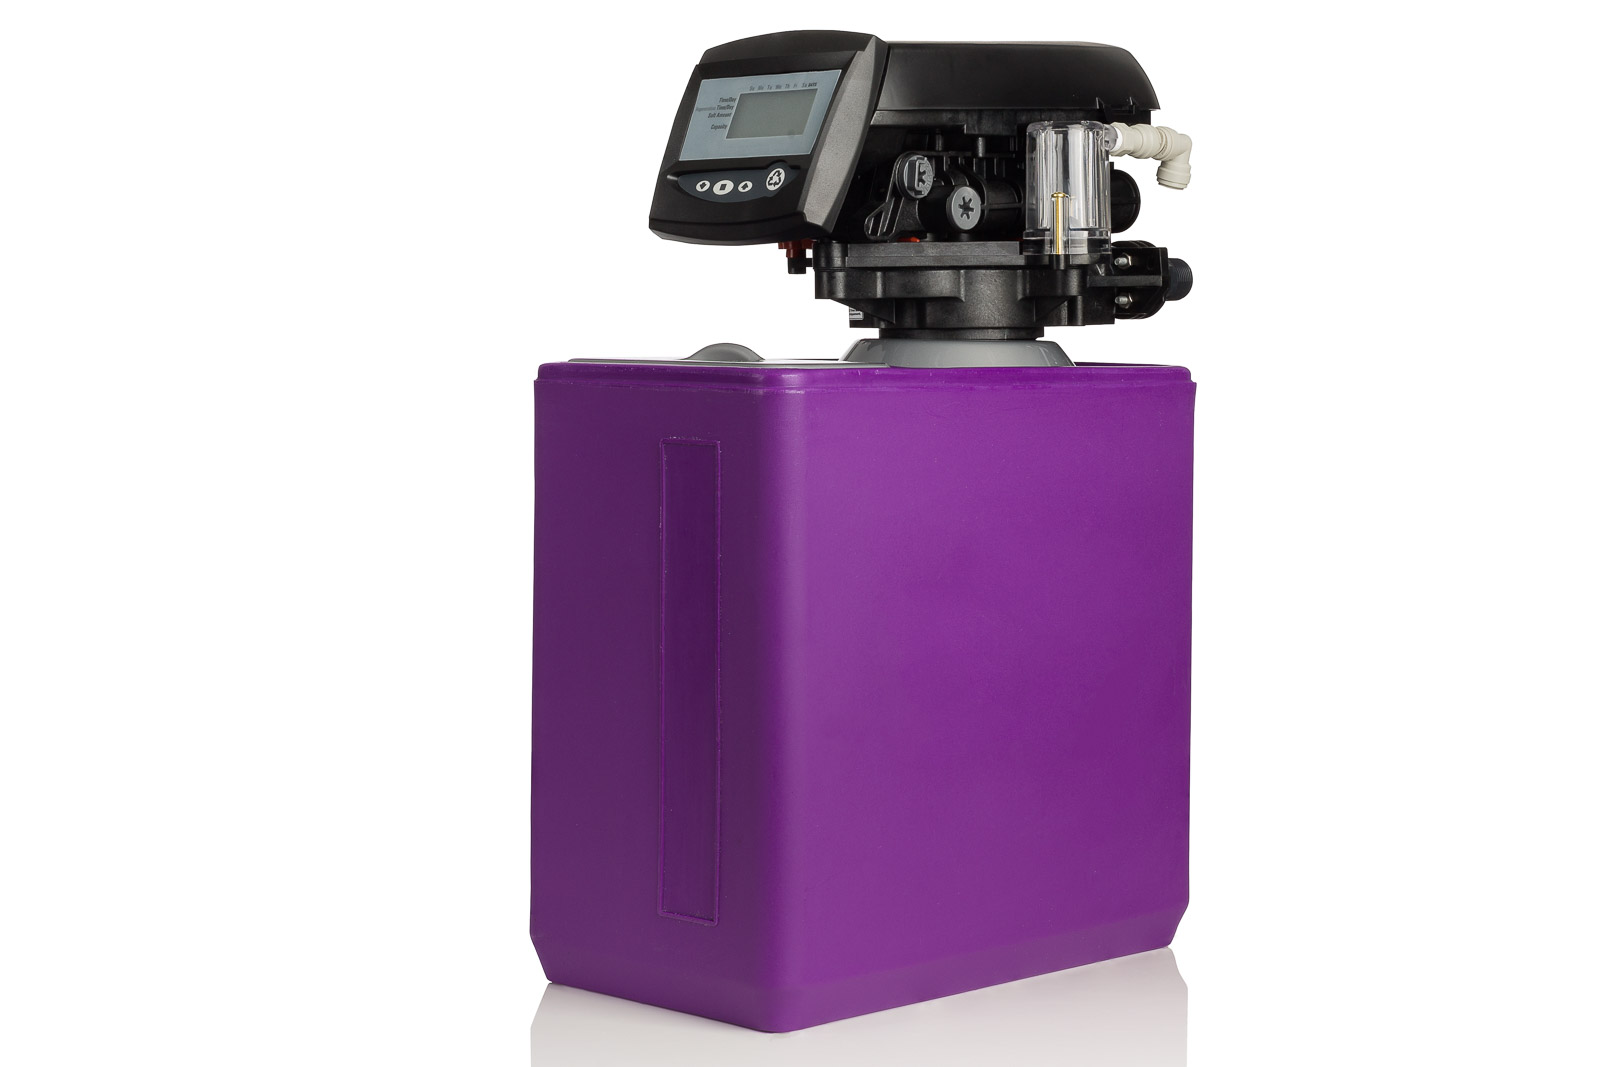 purple tank water softener and timer control on white background